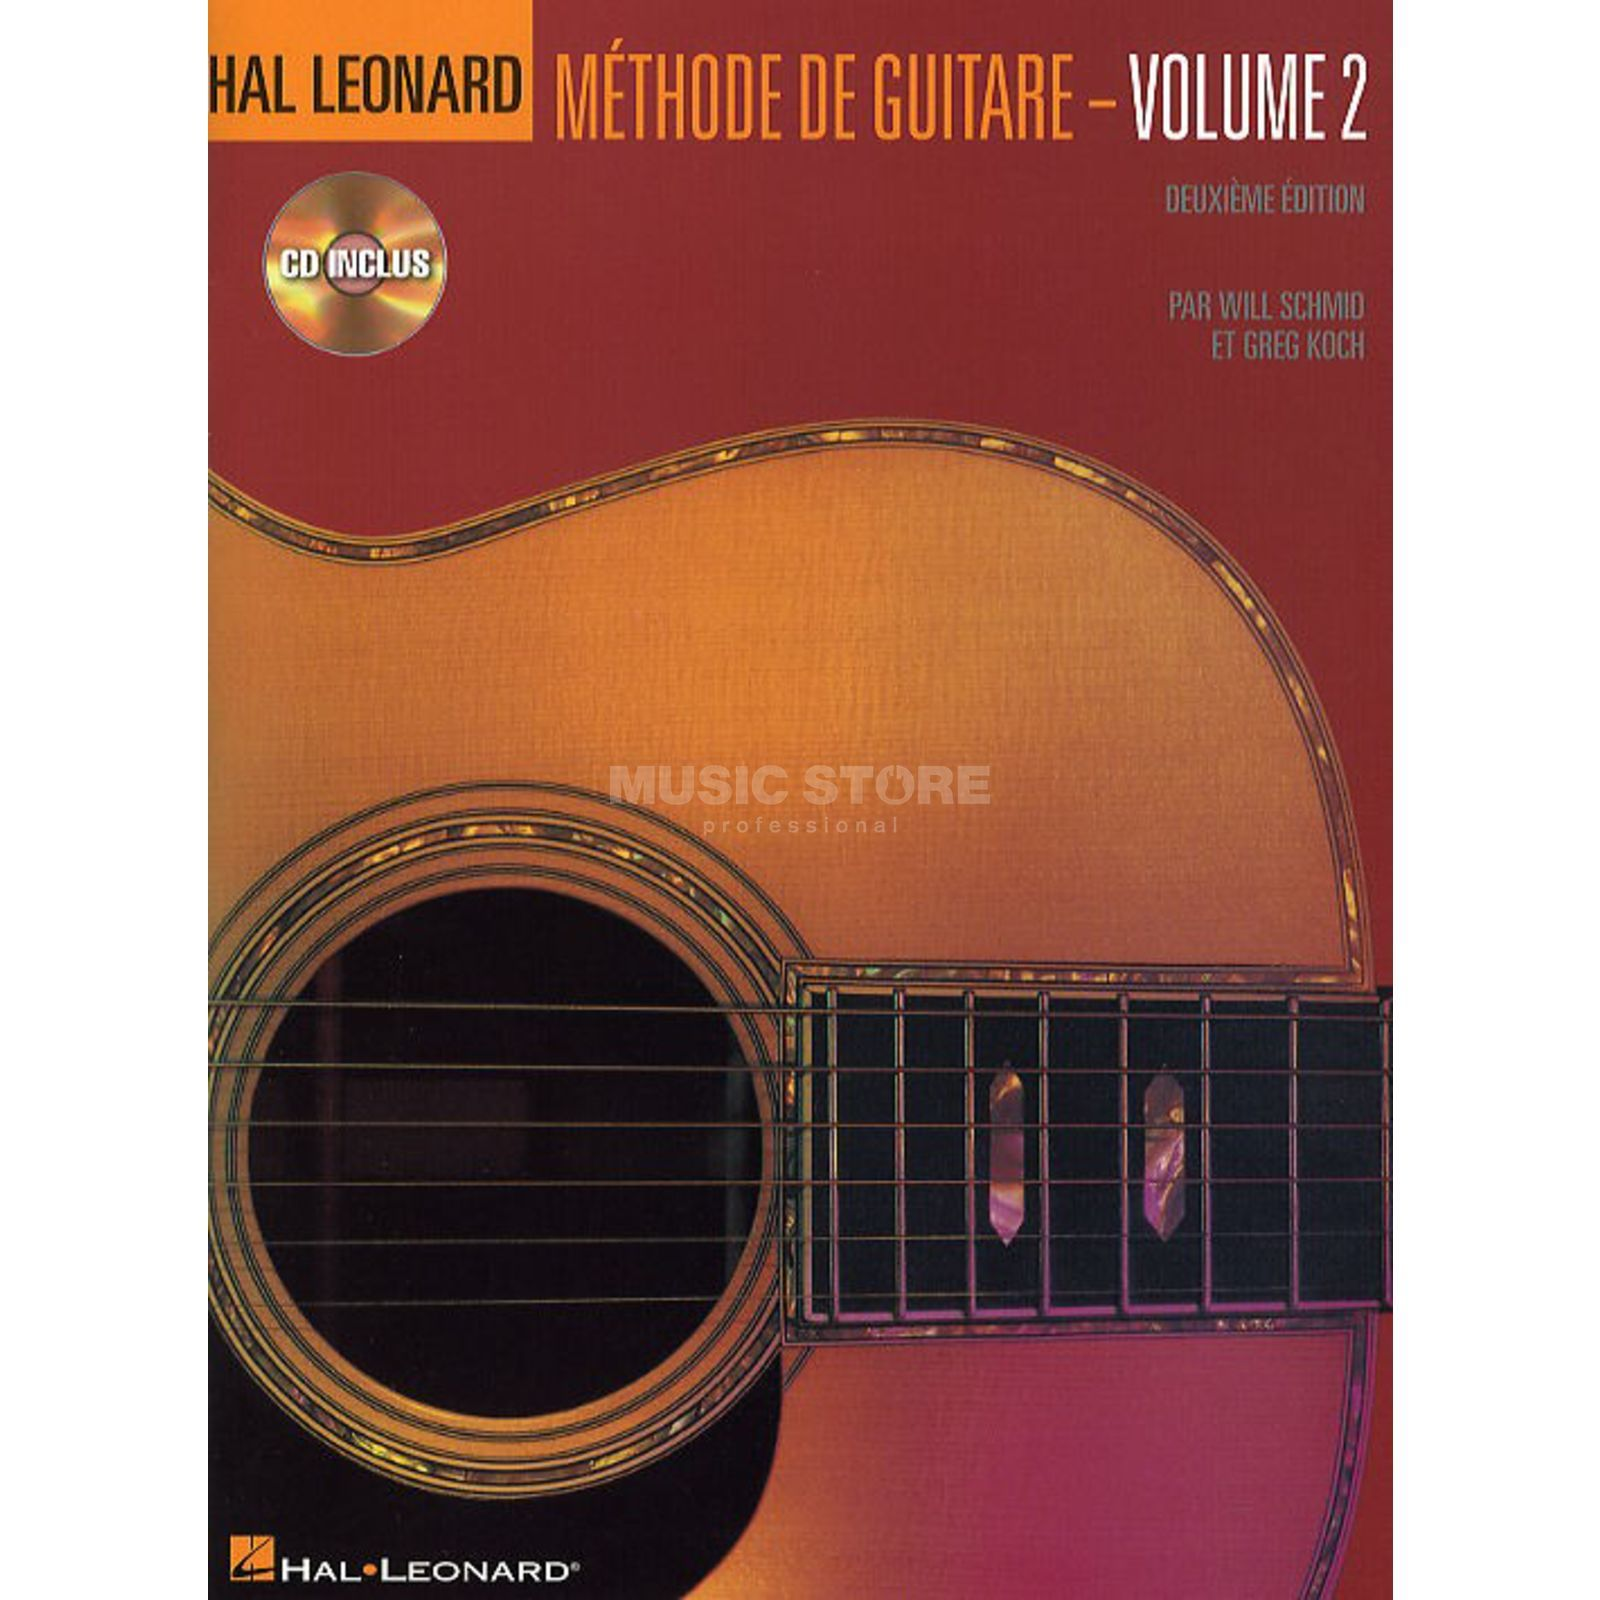 Hal Leonard Methode De Guitare Volume 2 Deuxieme Edition Avec CD Produktbillede